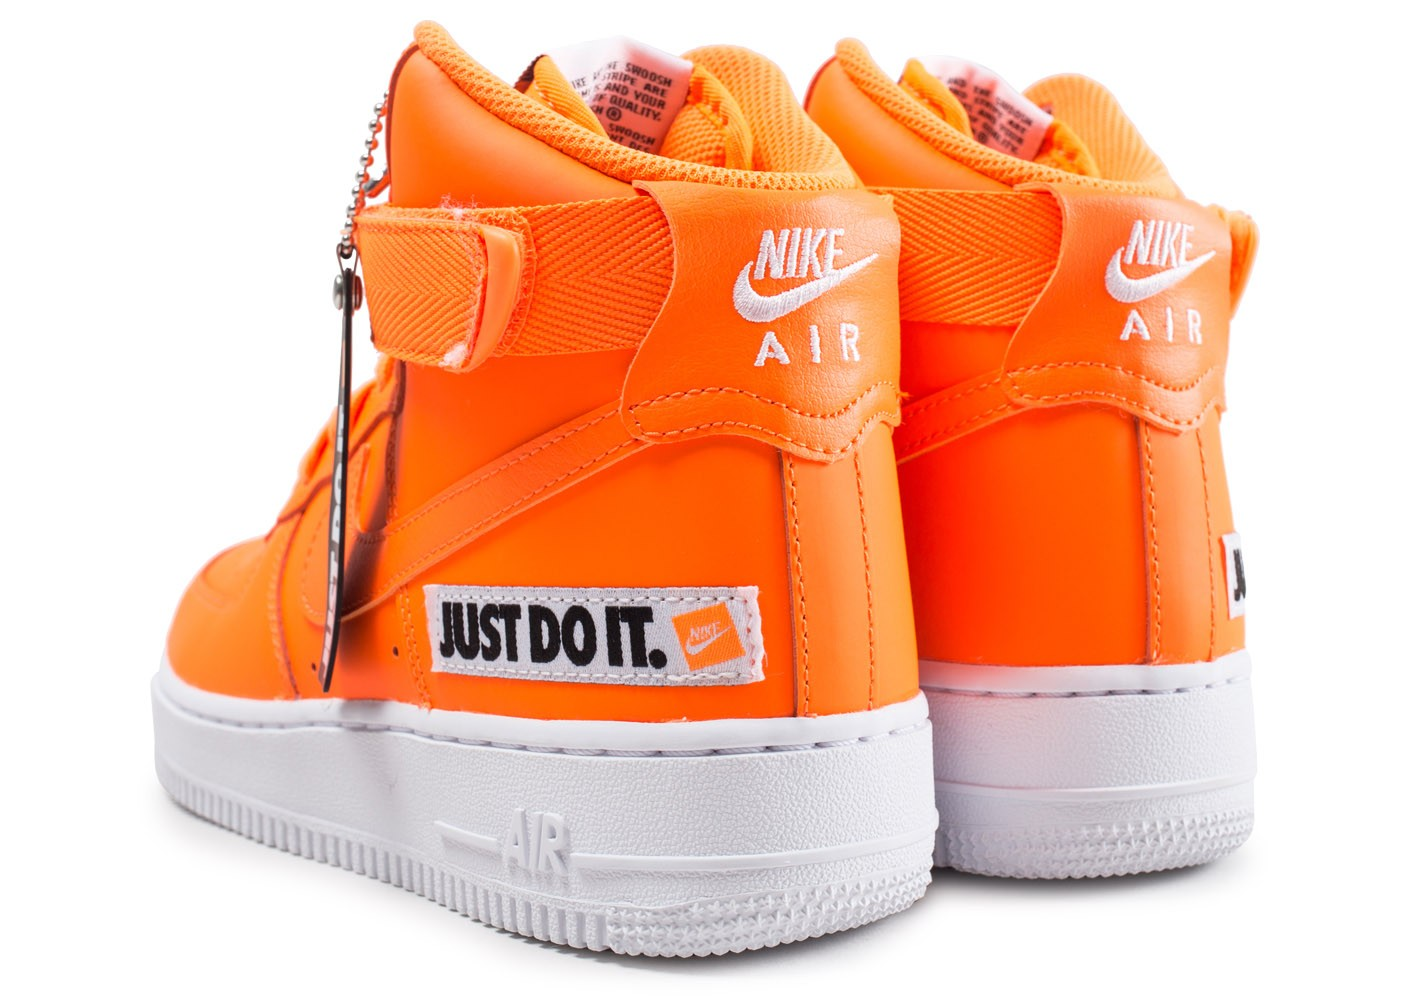 pretty nice e201f 9ab69 ... arrière Chaussures Nike Air Force 1 High LX Leather JDI orange femme vue  dessous ...